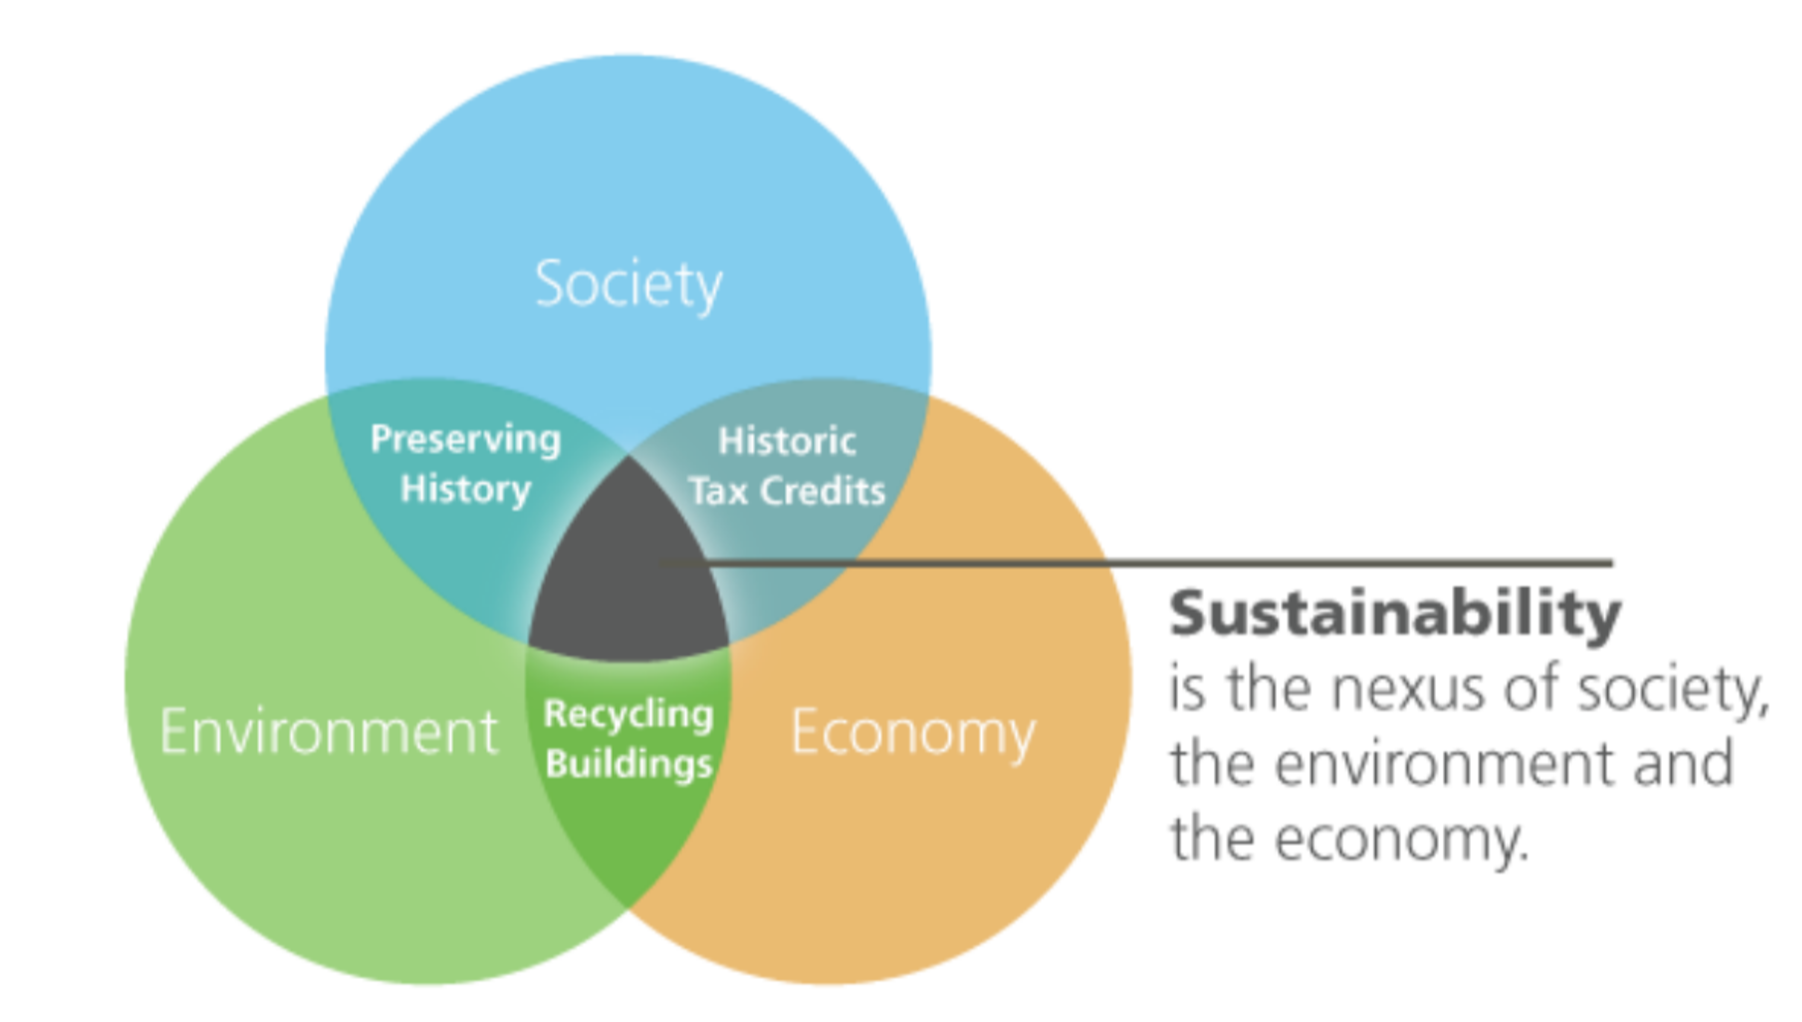 Sustainability is the nexus of society, the environment, and the economy